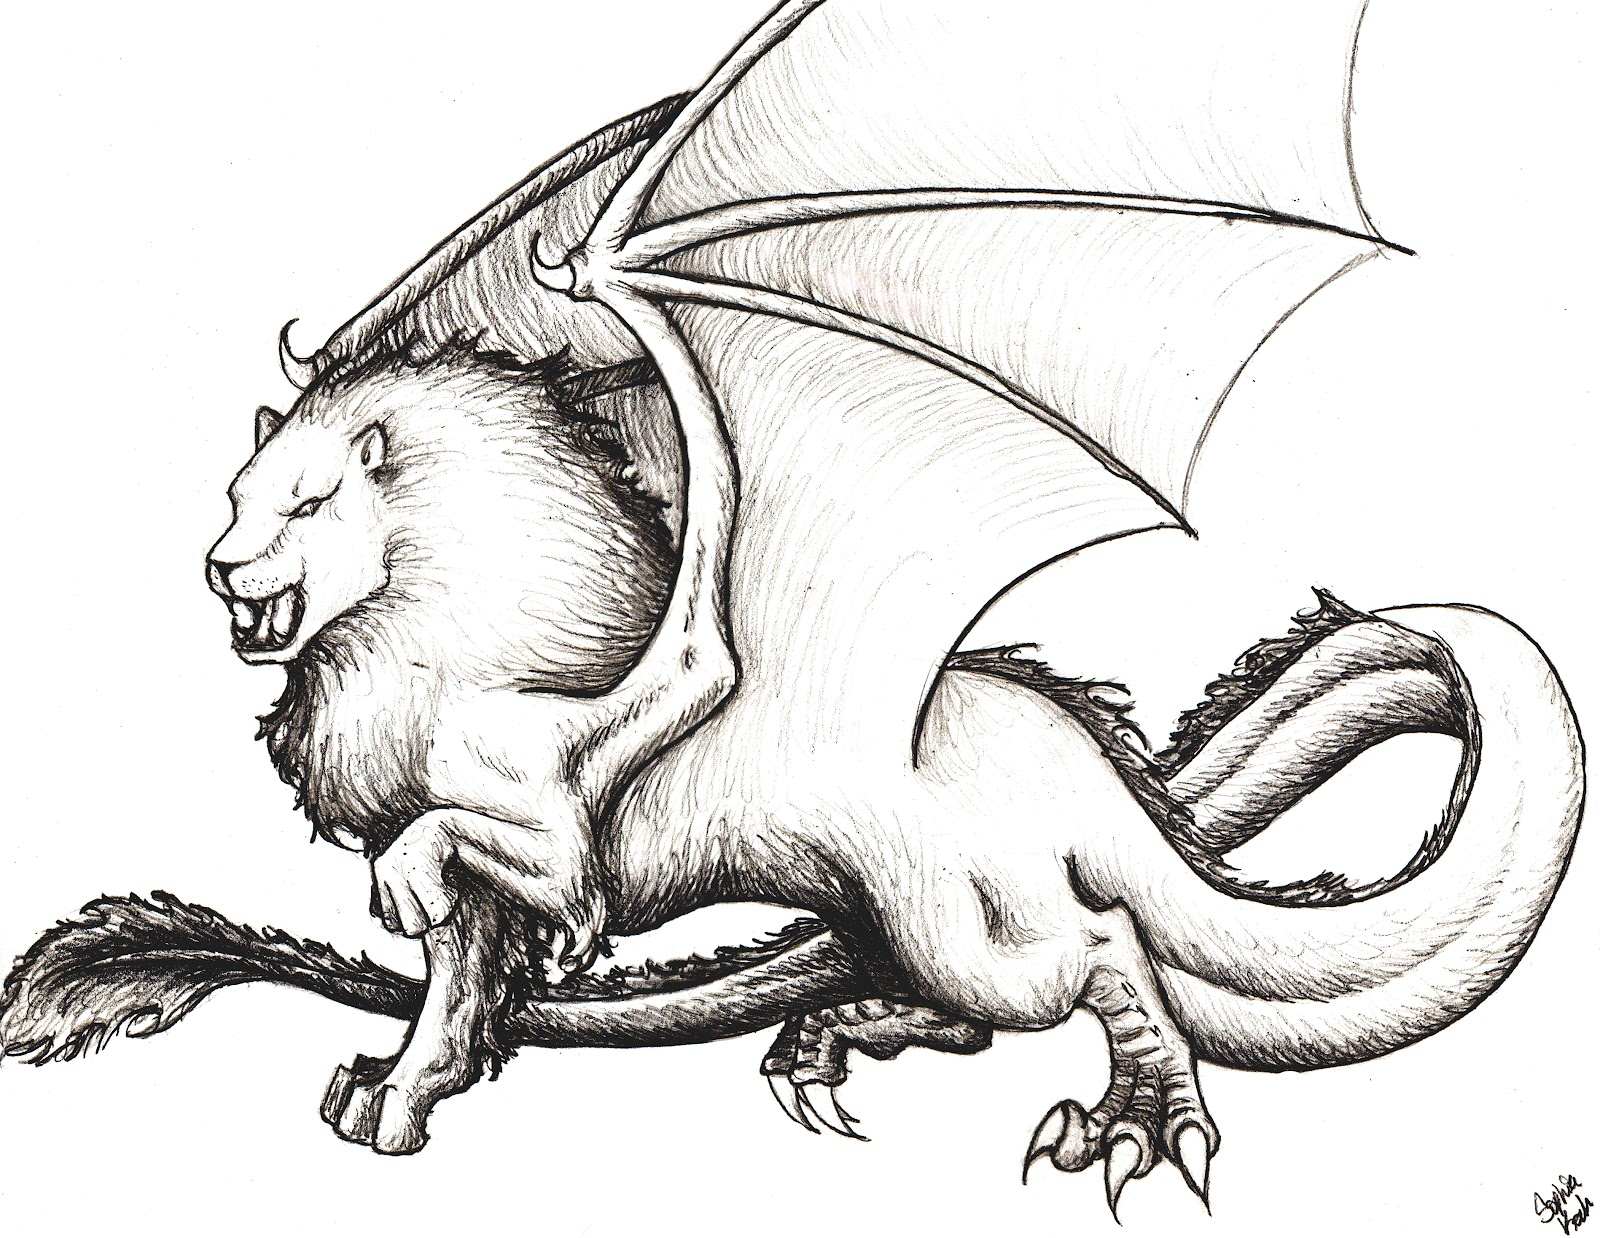 Leodracos--half lion, half dragon, and also engulfed in flames